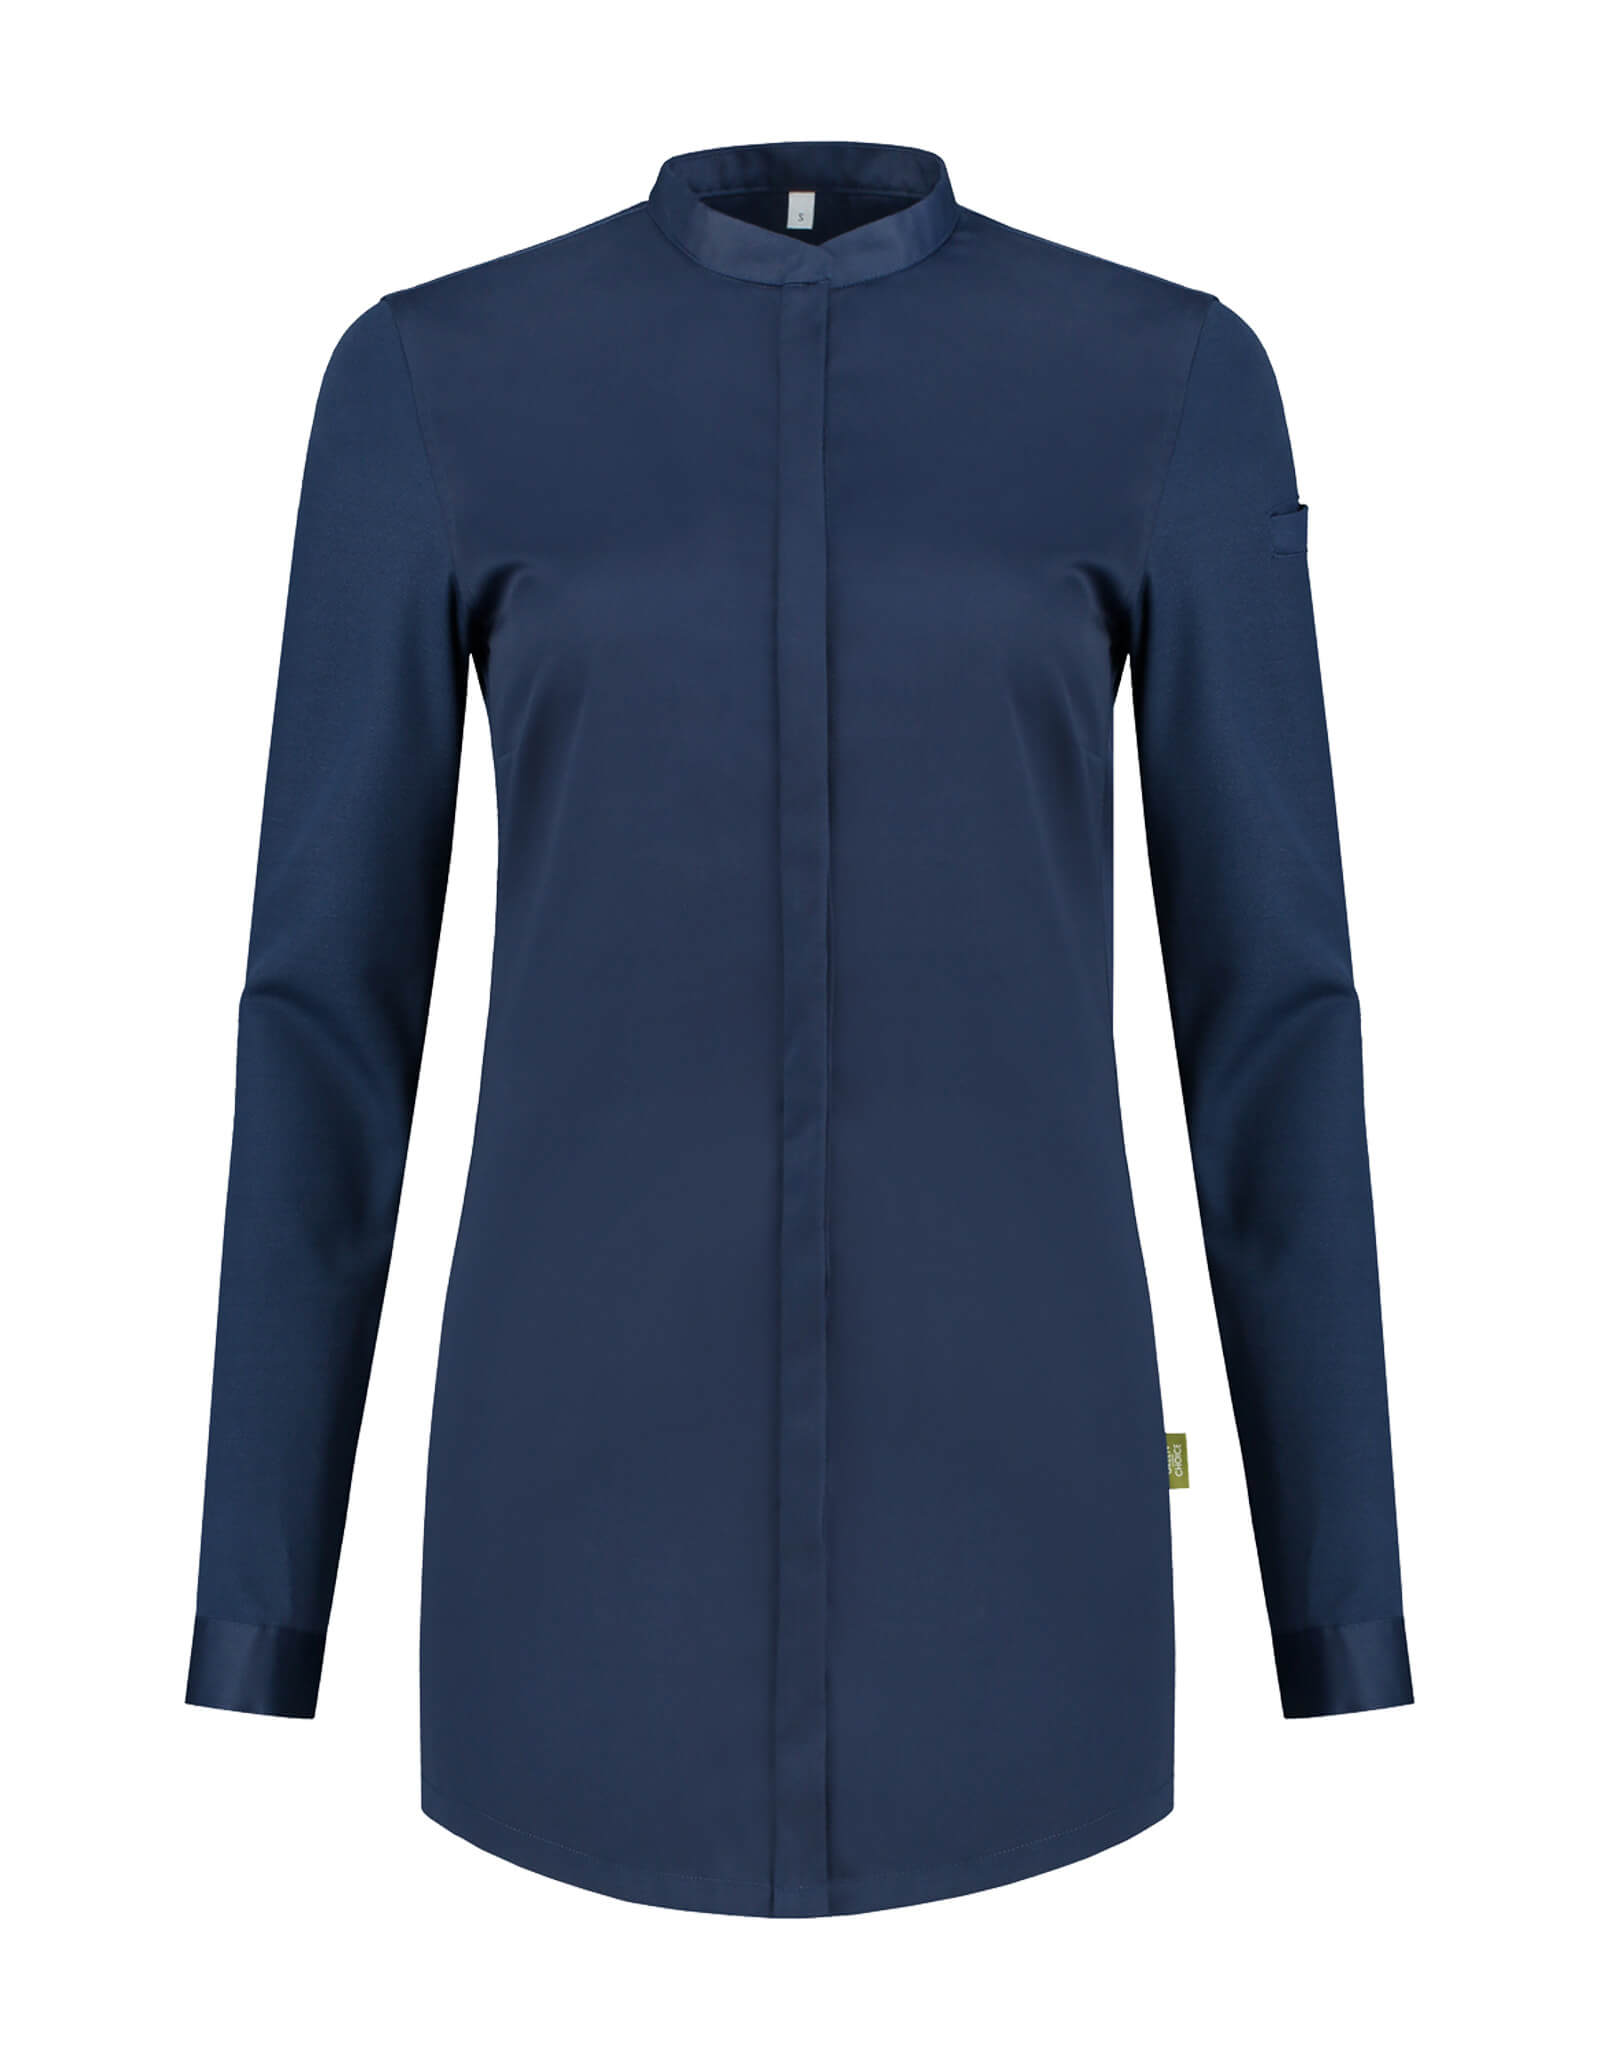 Veste Cuisine Jolie Patriot Blue